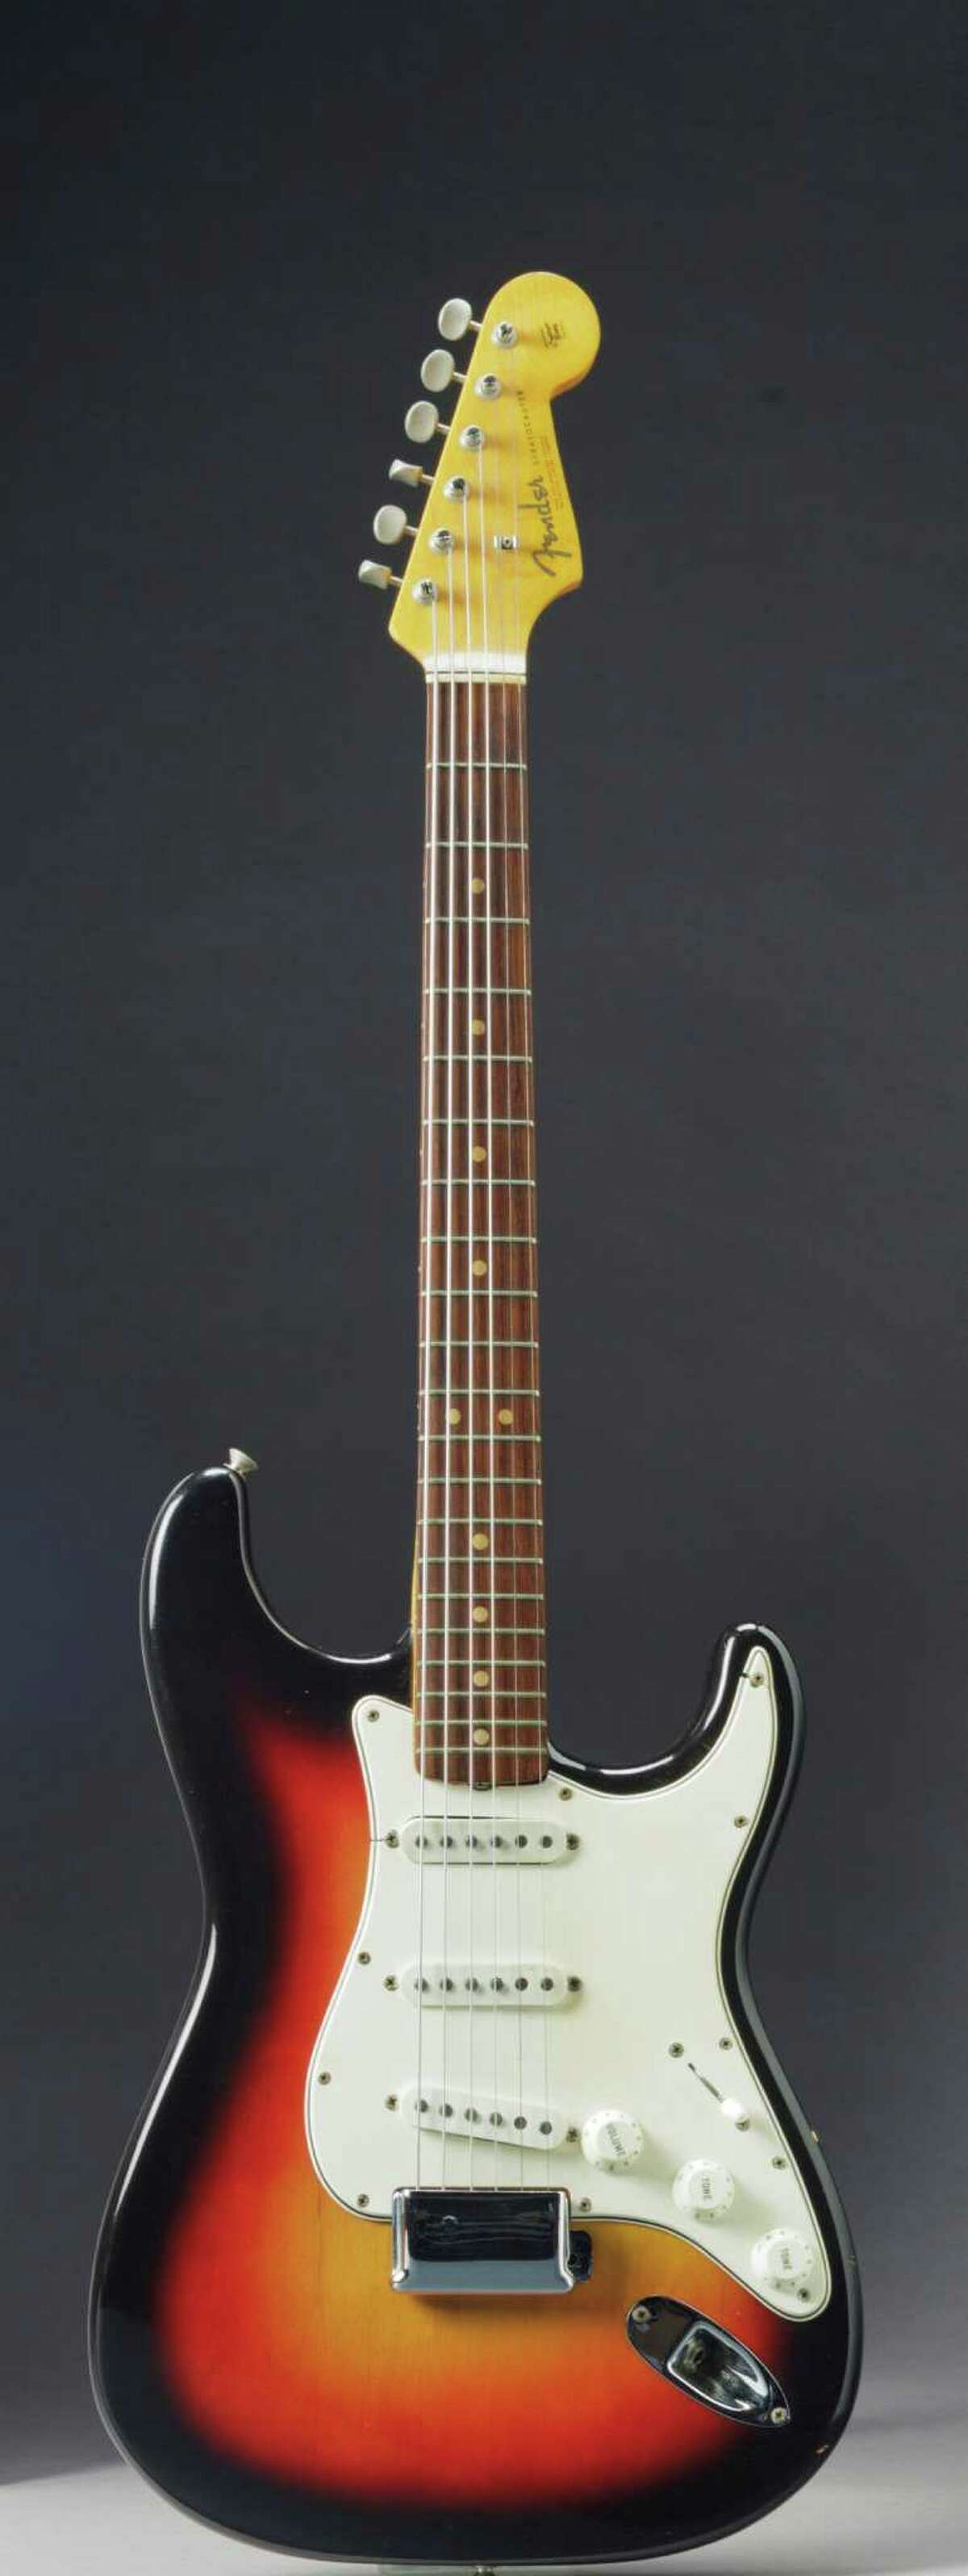 This undated photo provided by Christie's shows the Fender Stratocaster a young Bob Dylan played at the historic 1965 Newport Folk Festival. On Dec. 6, 2013, it could bring as much as half a million dollars when it comes up for auction at Christie's New York. The festival marked the first time Dylan went electric, a defining moment that marked his move from acoustic folk to electric rock and roll, drawing boos from folk-music purists. (AP Photo/Christie's) ORG XMIT: NY116